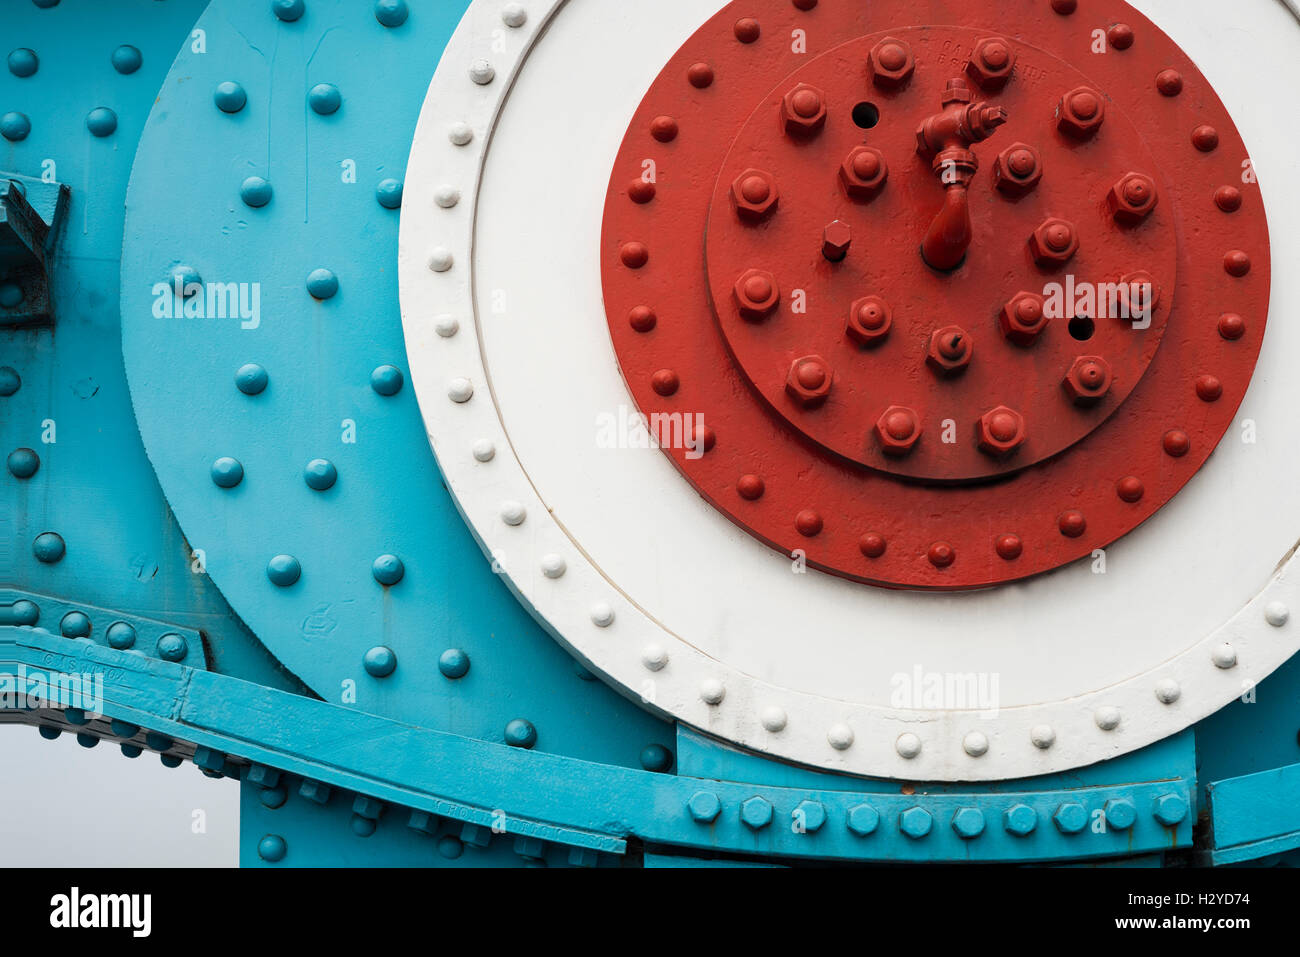 Colorfully painted steel parts with nuts, bolts and rivets of two chain link elements of the Tower Bridge suspension bridge in London, UK Stock Photo